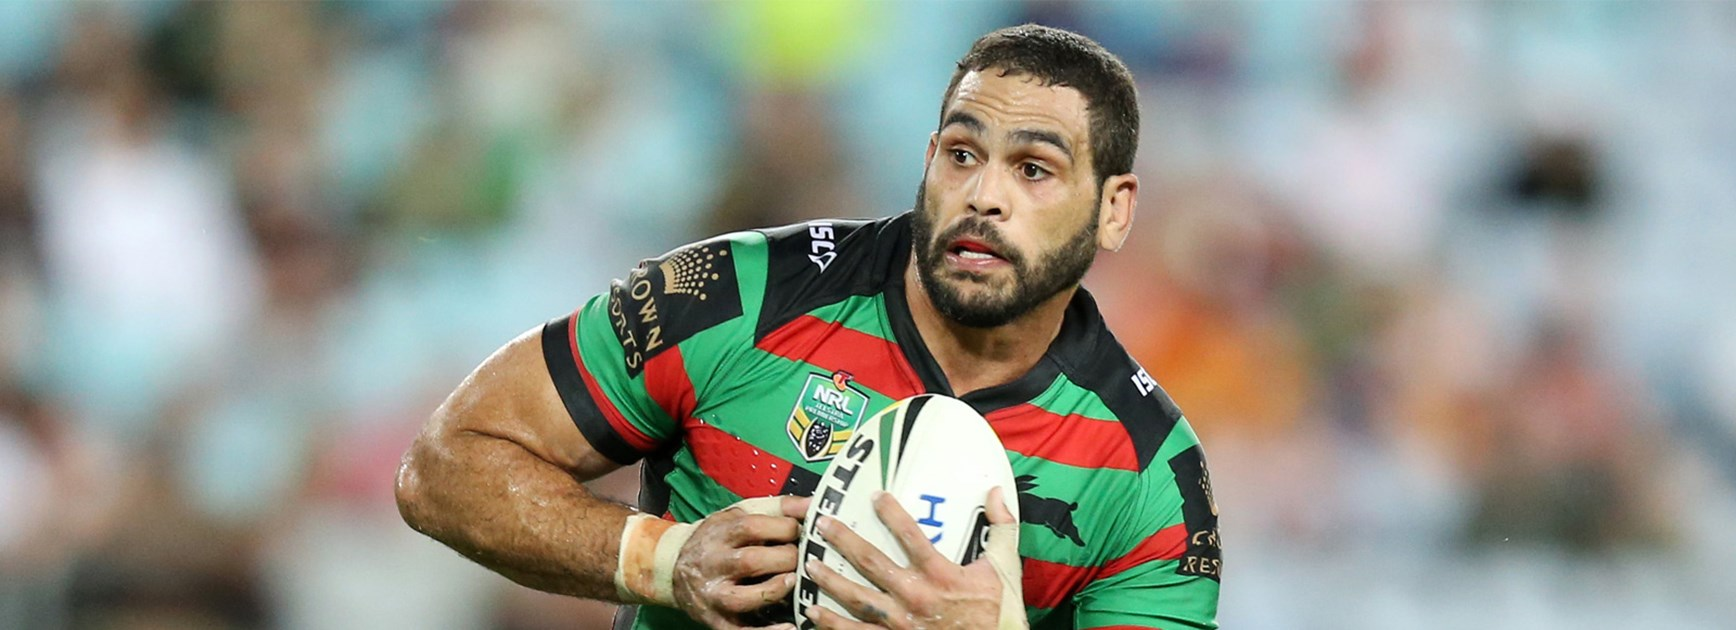 Greg Inglis takes a run during the Rabbitohs' Thursday night game against the Tigers.